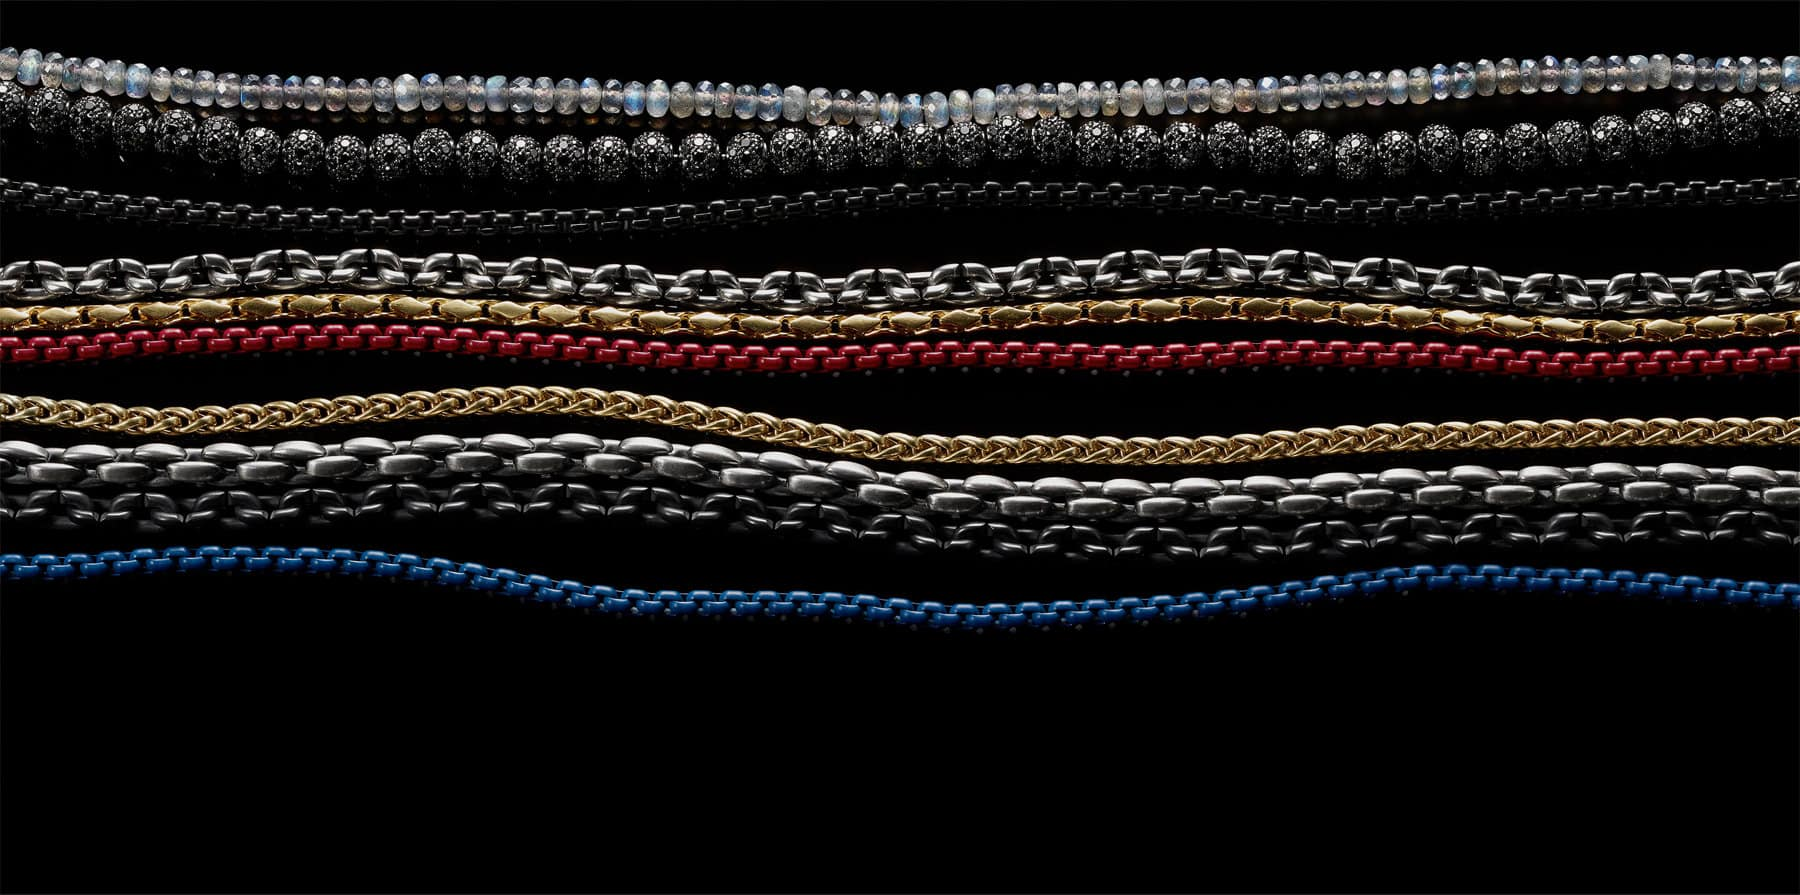 David Yurman men's Spiritual Beads and Chain necklaces, in labradorite, black diamonds, black titanium, sterling silver, 18K gold and red or blue stainless steel, arranged as horizontal layers in a stack on a black background.